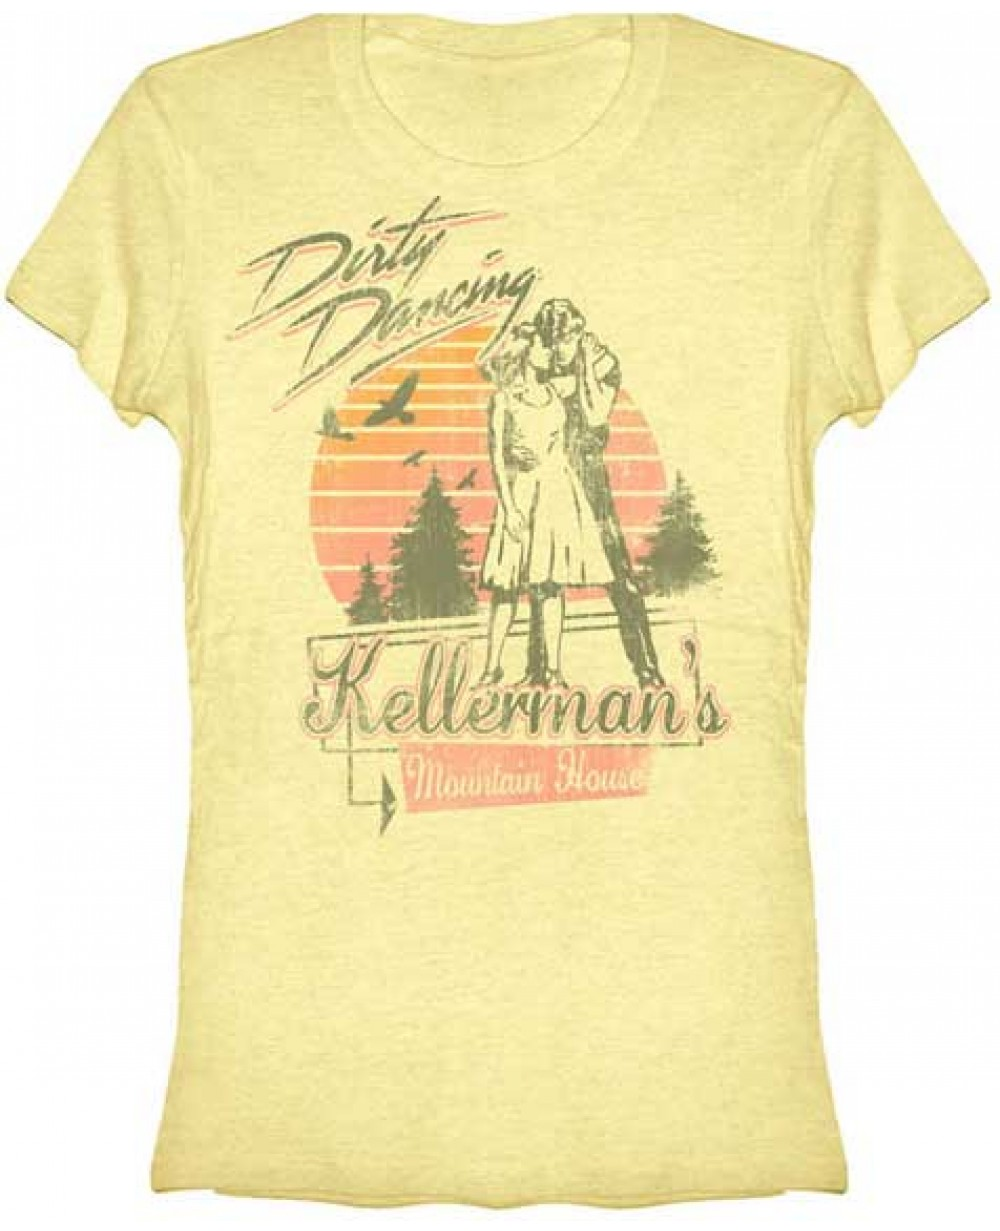 Dirty dancing t shirts t shirt design database Kellermans dirty dancing